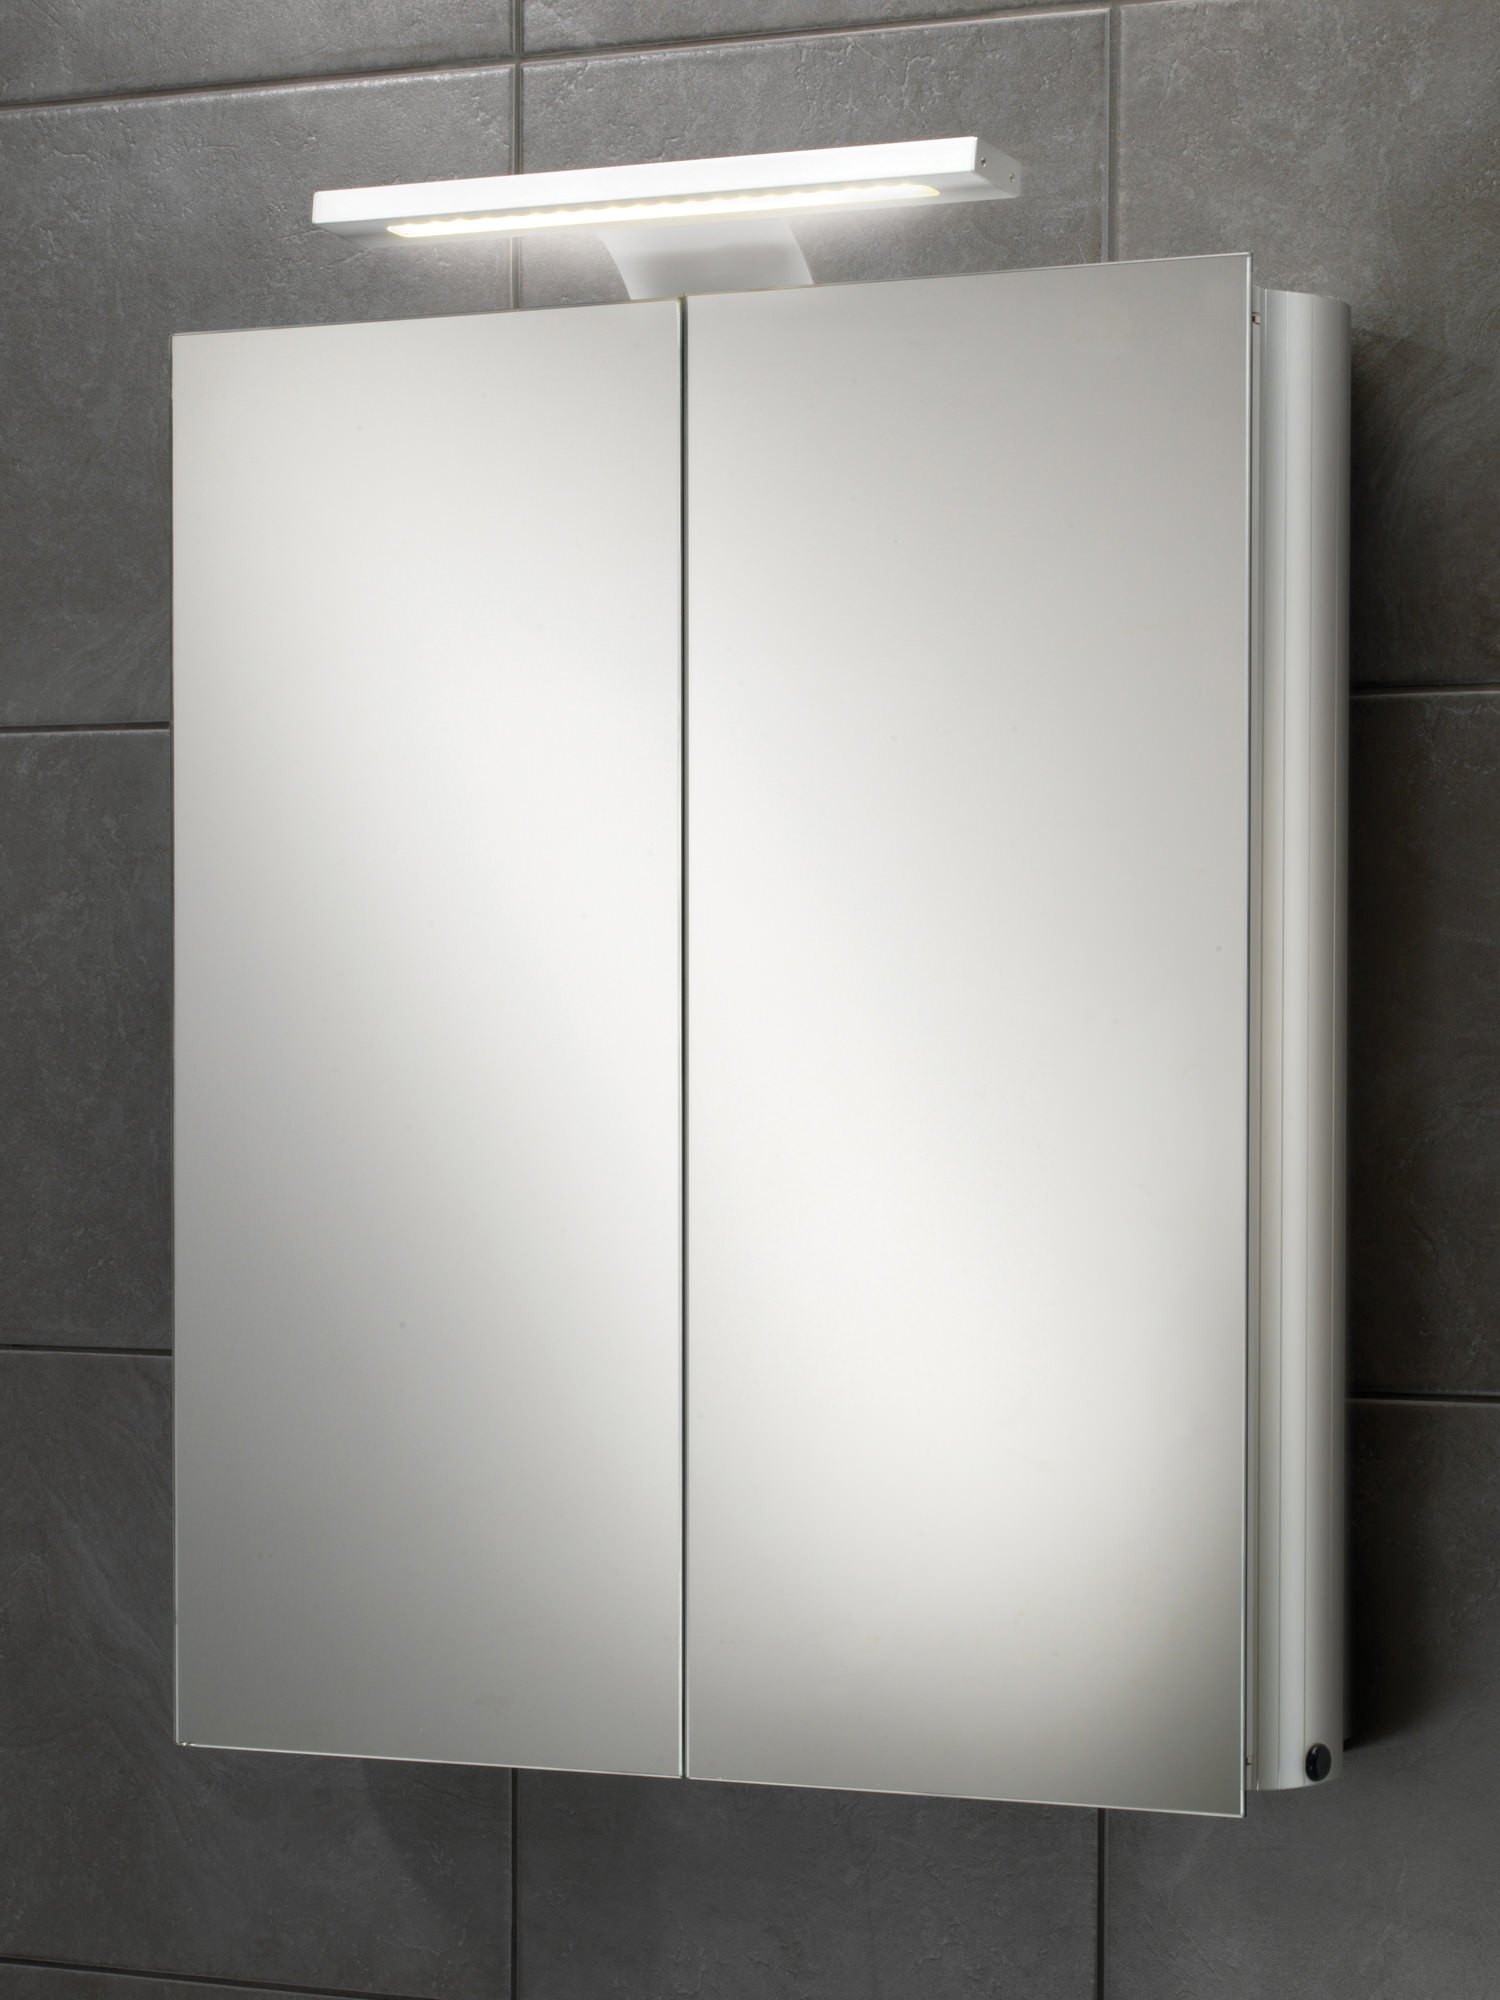 Mirrored Bathroom Cabinets 500mm Wide